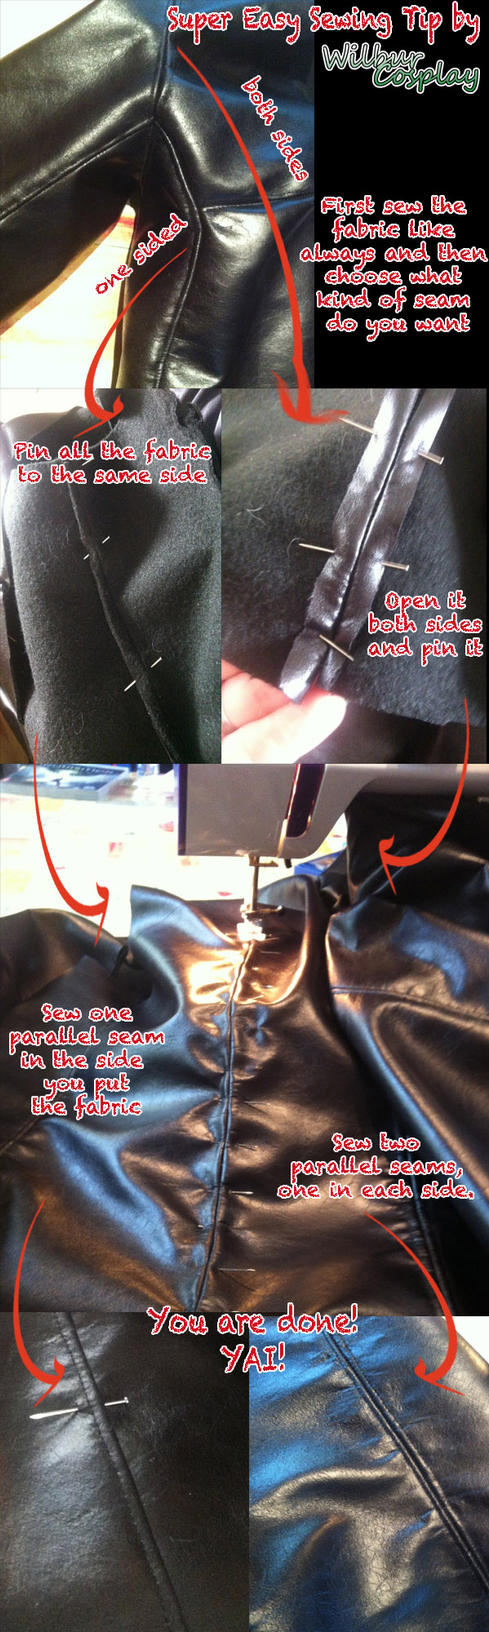 Sewing Cosplay Tutorial by wilbur-kyriu